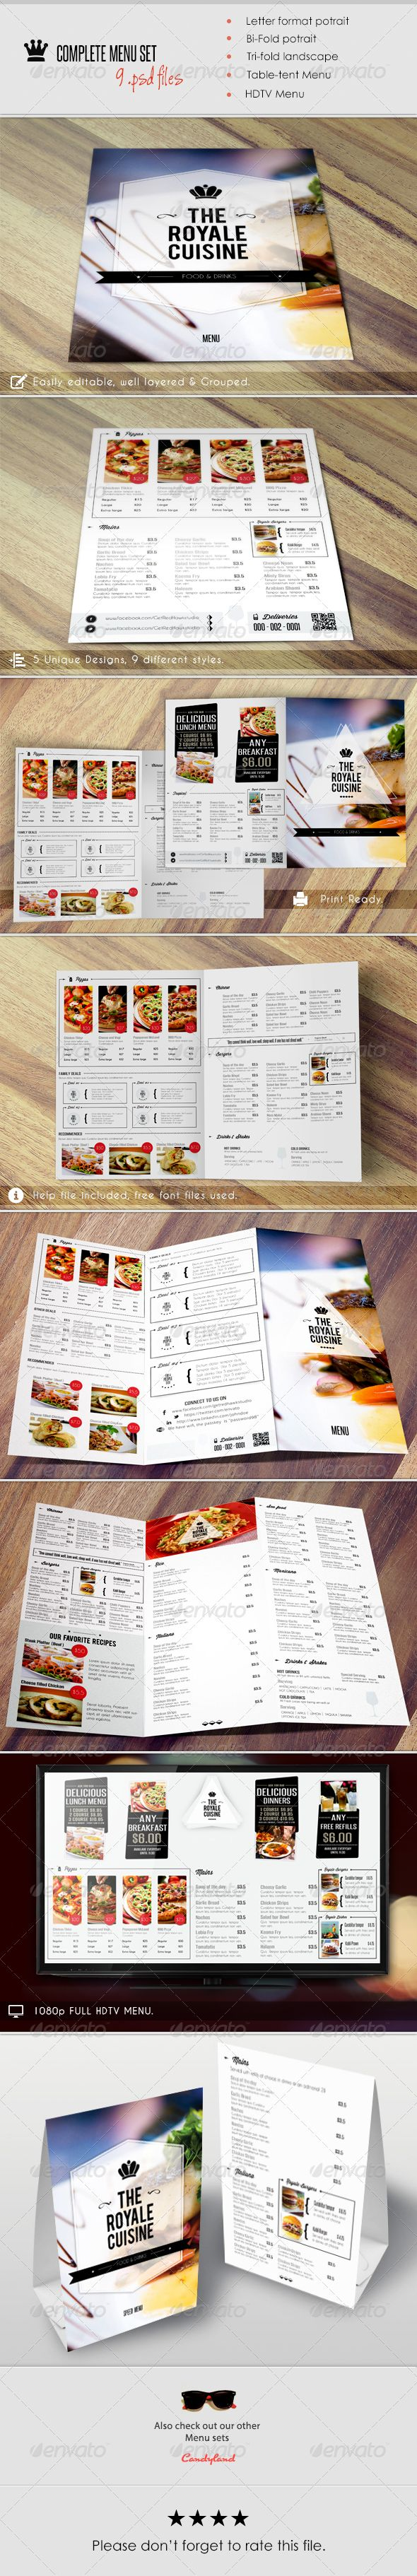 Menu Pack 2 Food Menu TemplateRestaurant